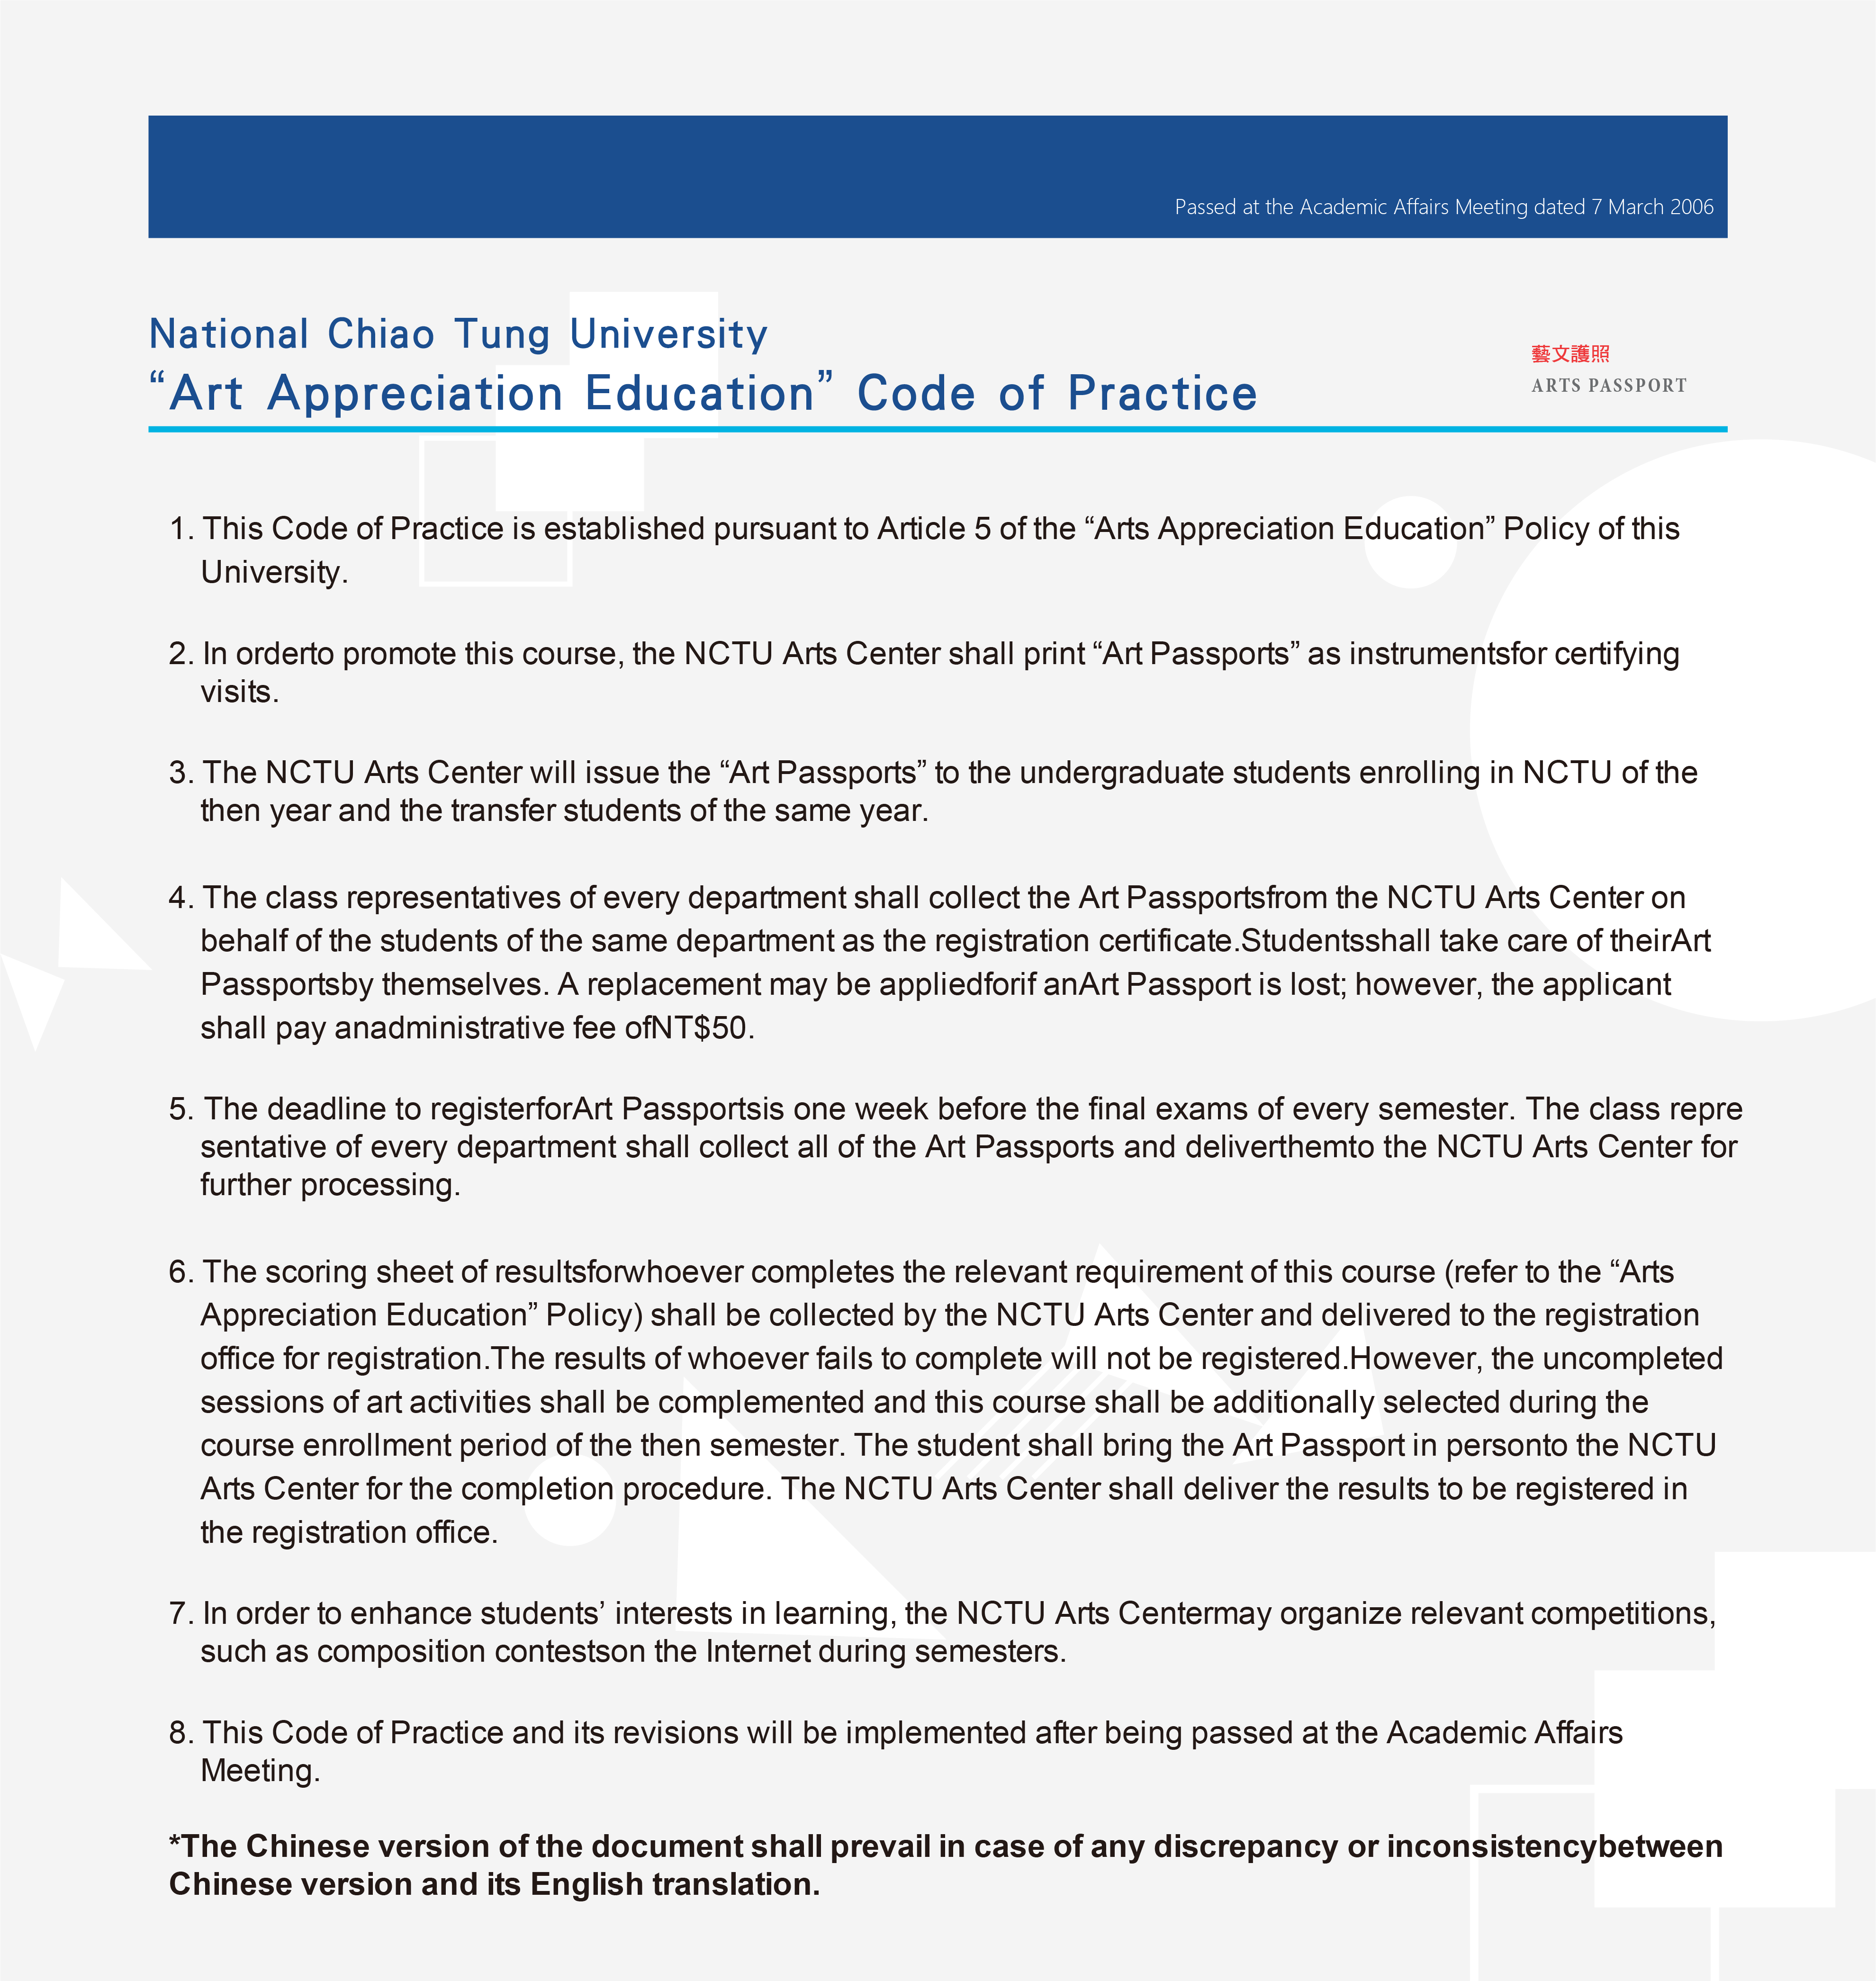 Code of Practice for the Arts Appreciation Education Policy